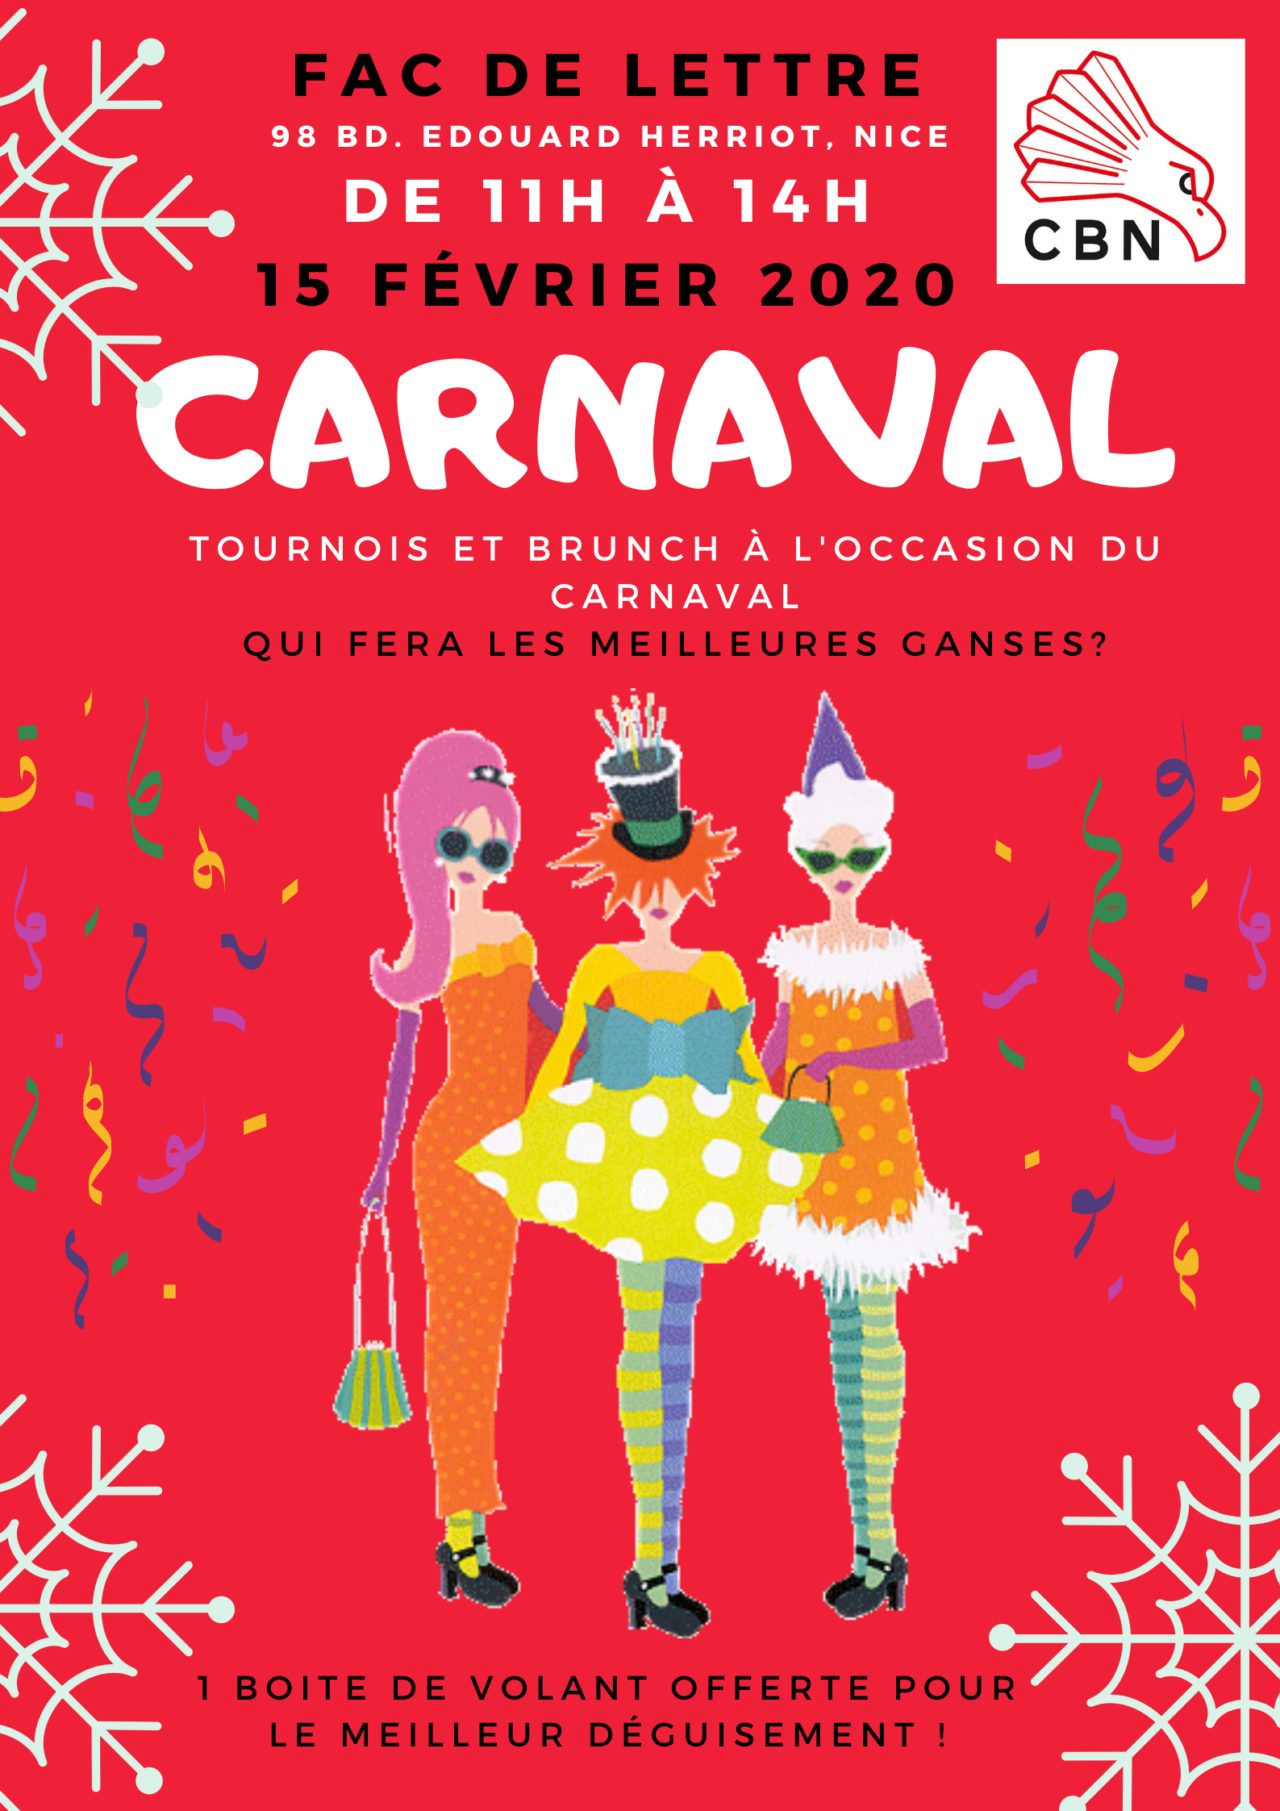 https://www.clubbadmintonnice.org/wp-content/uploads/2020/02/2020-02-15-CARNAVAL-1280x1811.png